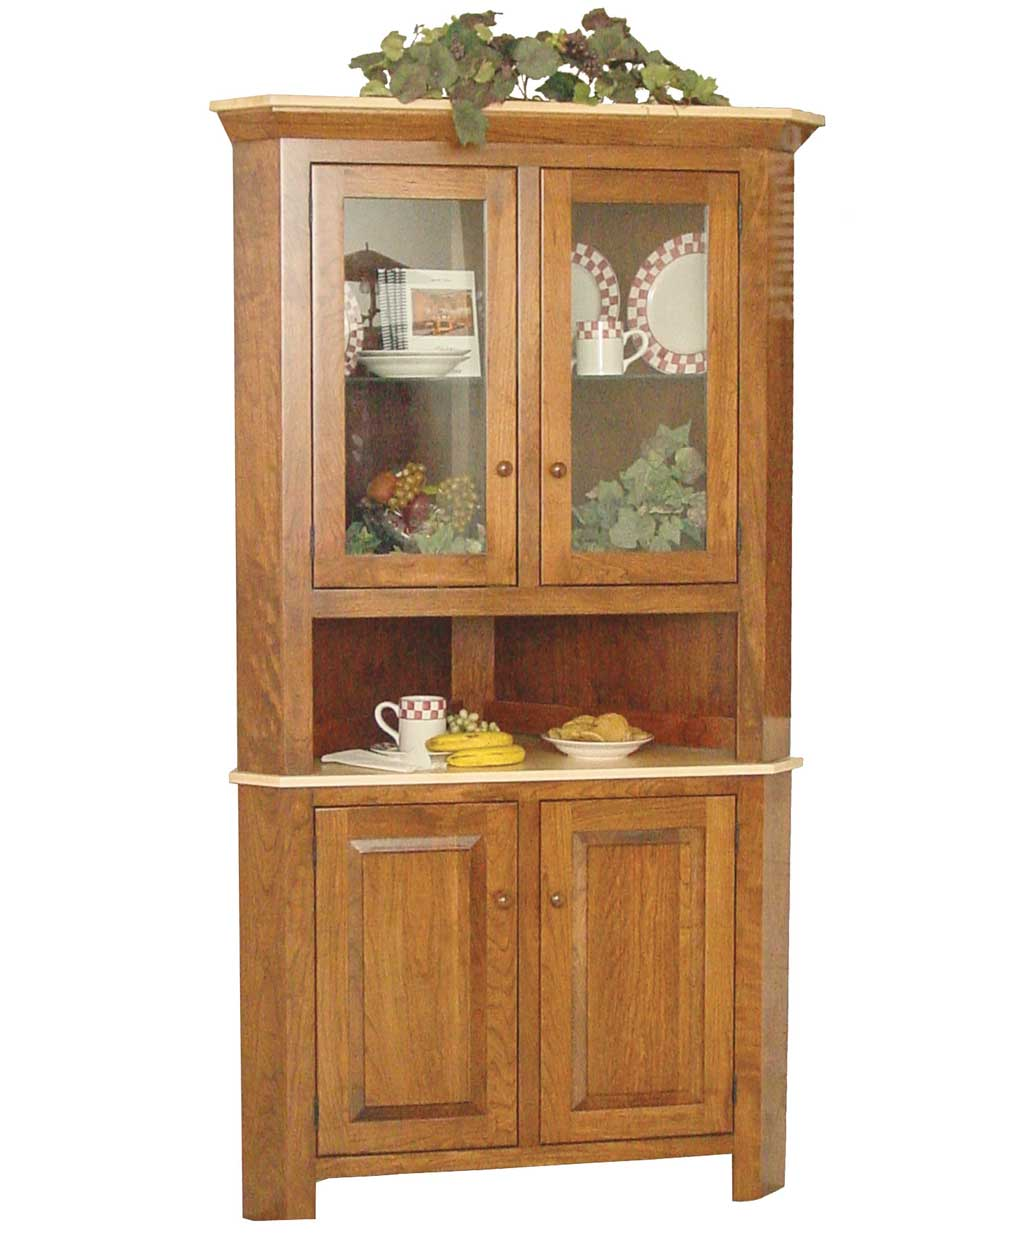 Oak Dining Room Sets With Hutch: Amish Direct Furniture